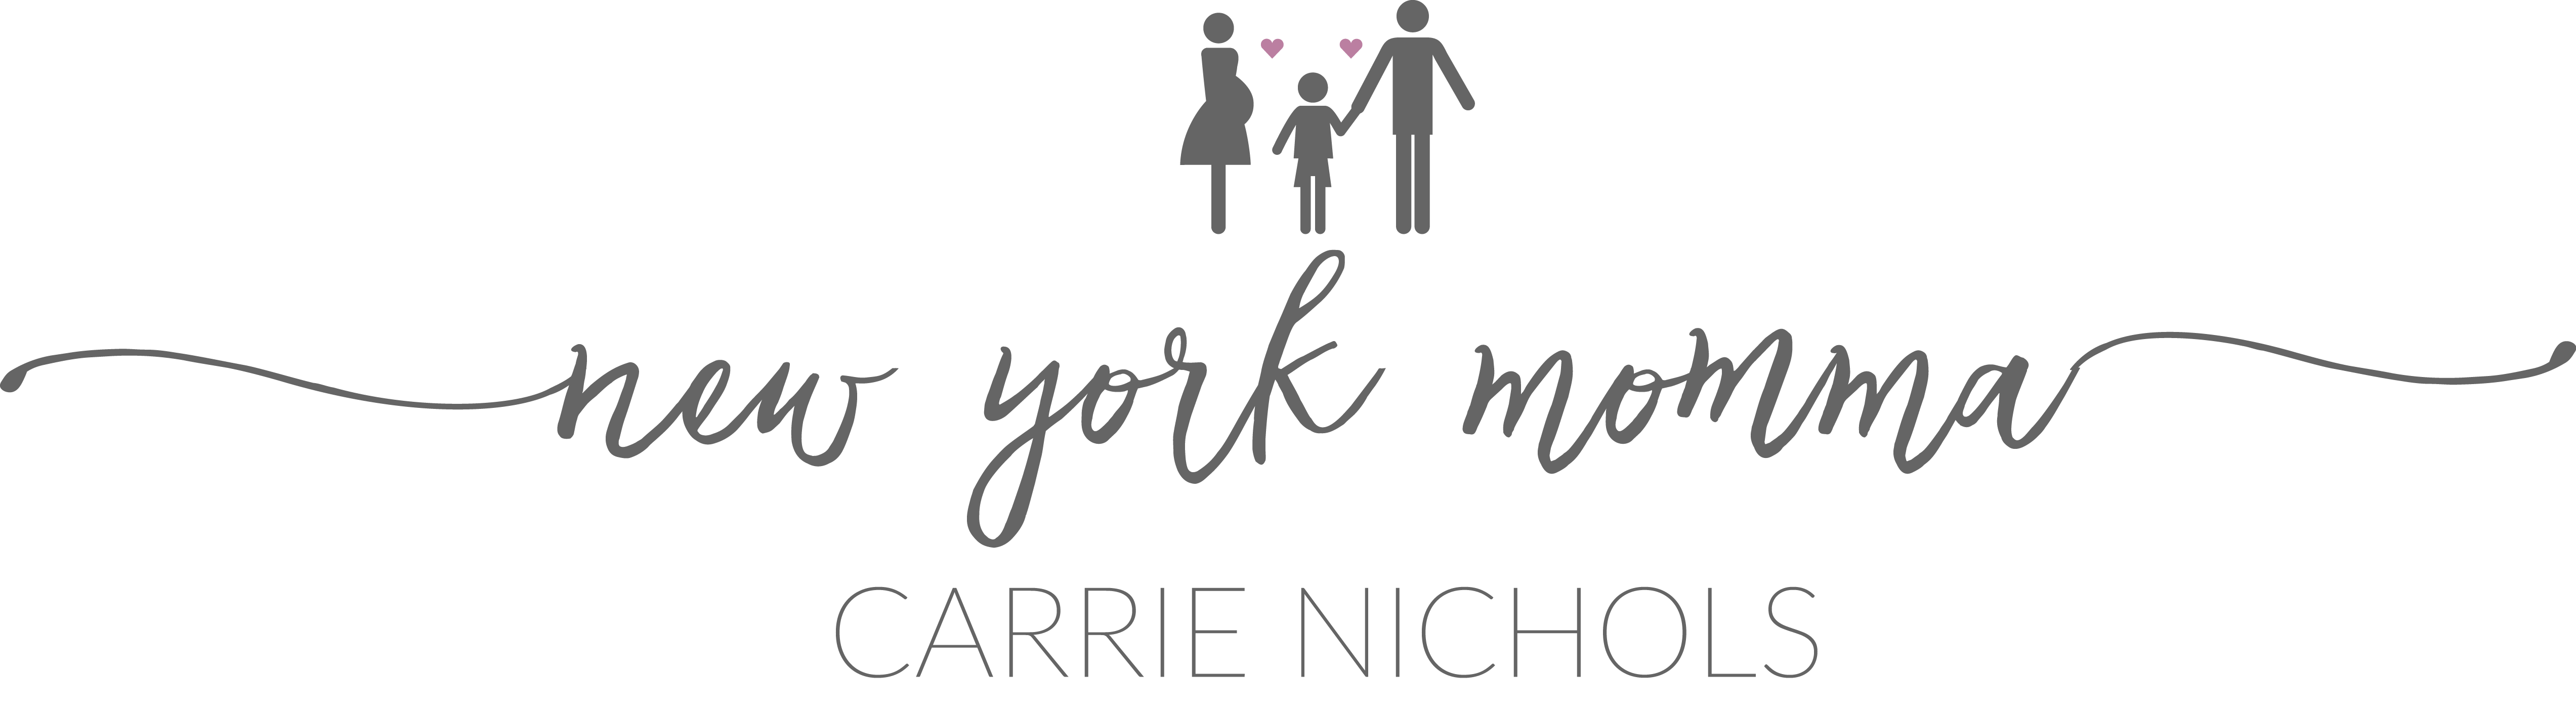 new york momma | carrie nichols